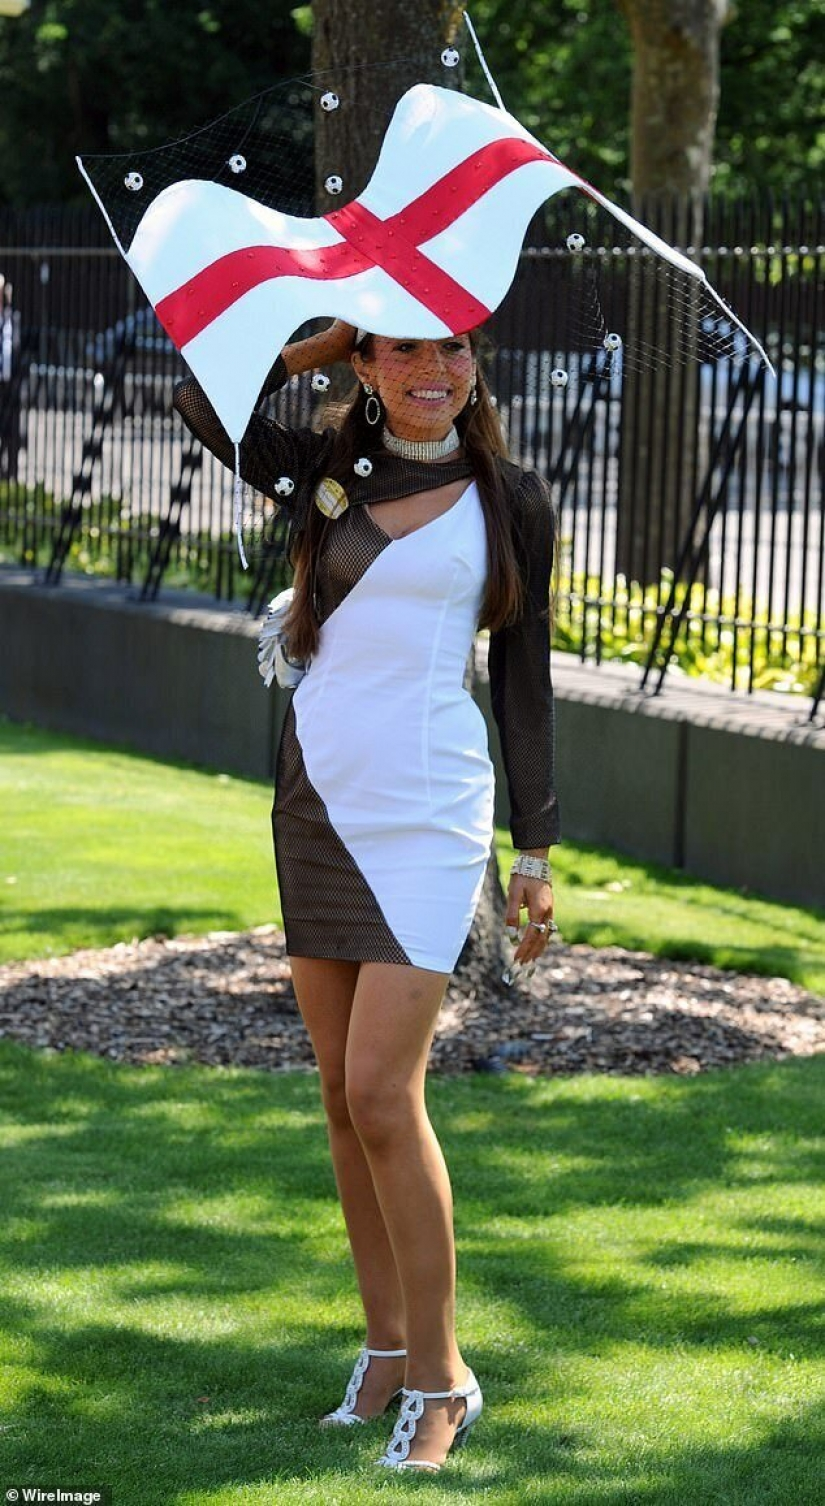 Designer hats is a British women to attend the races at Ascot remotely and push the boat out new things